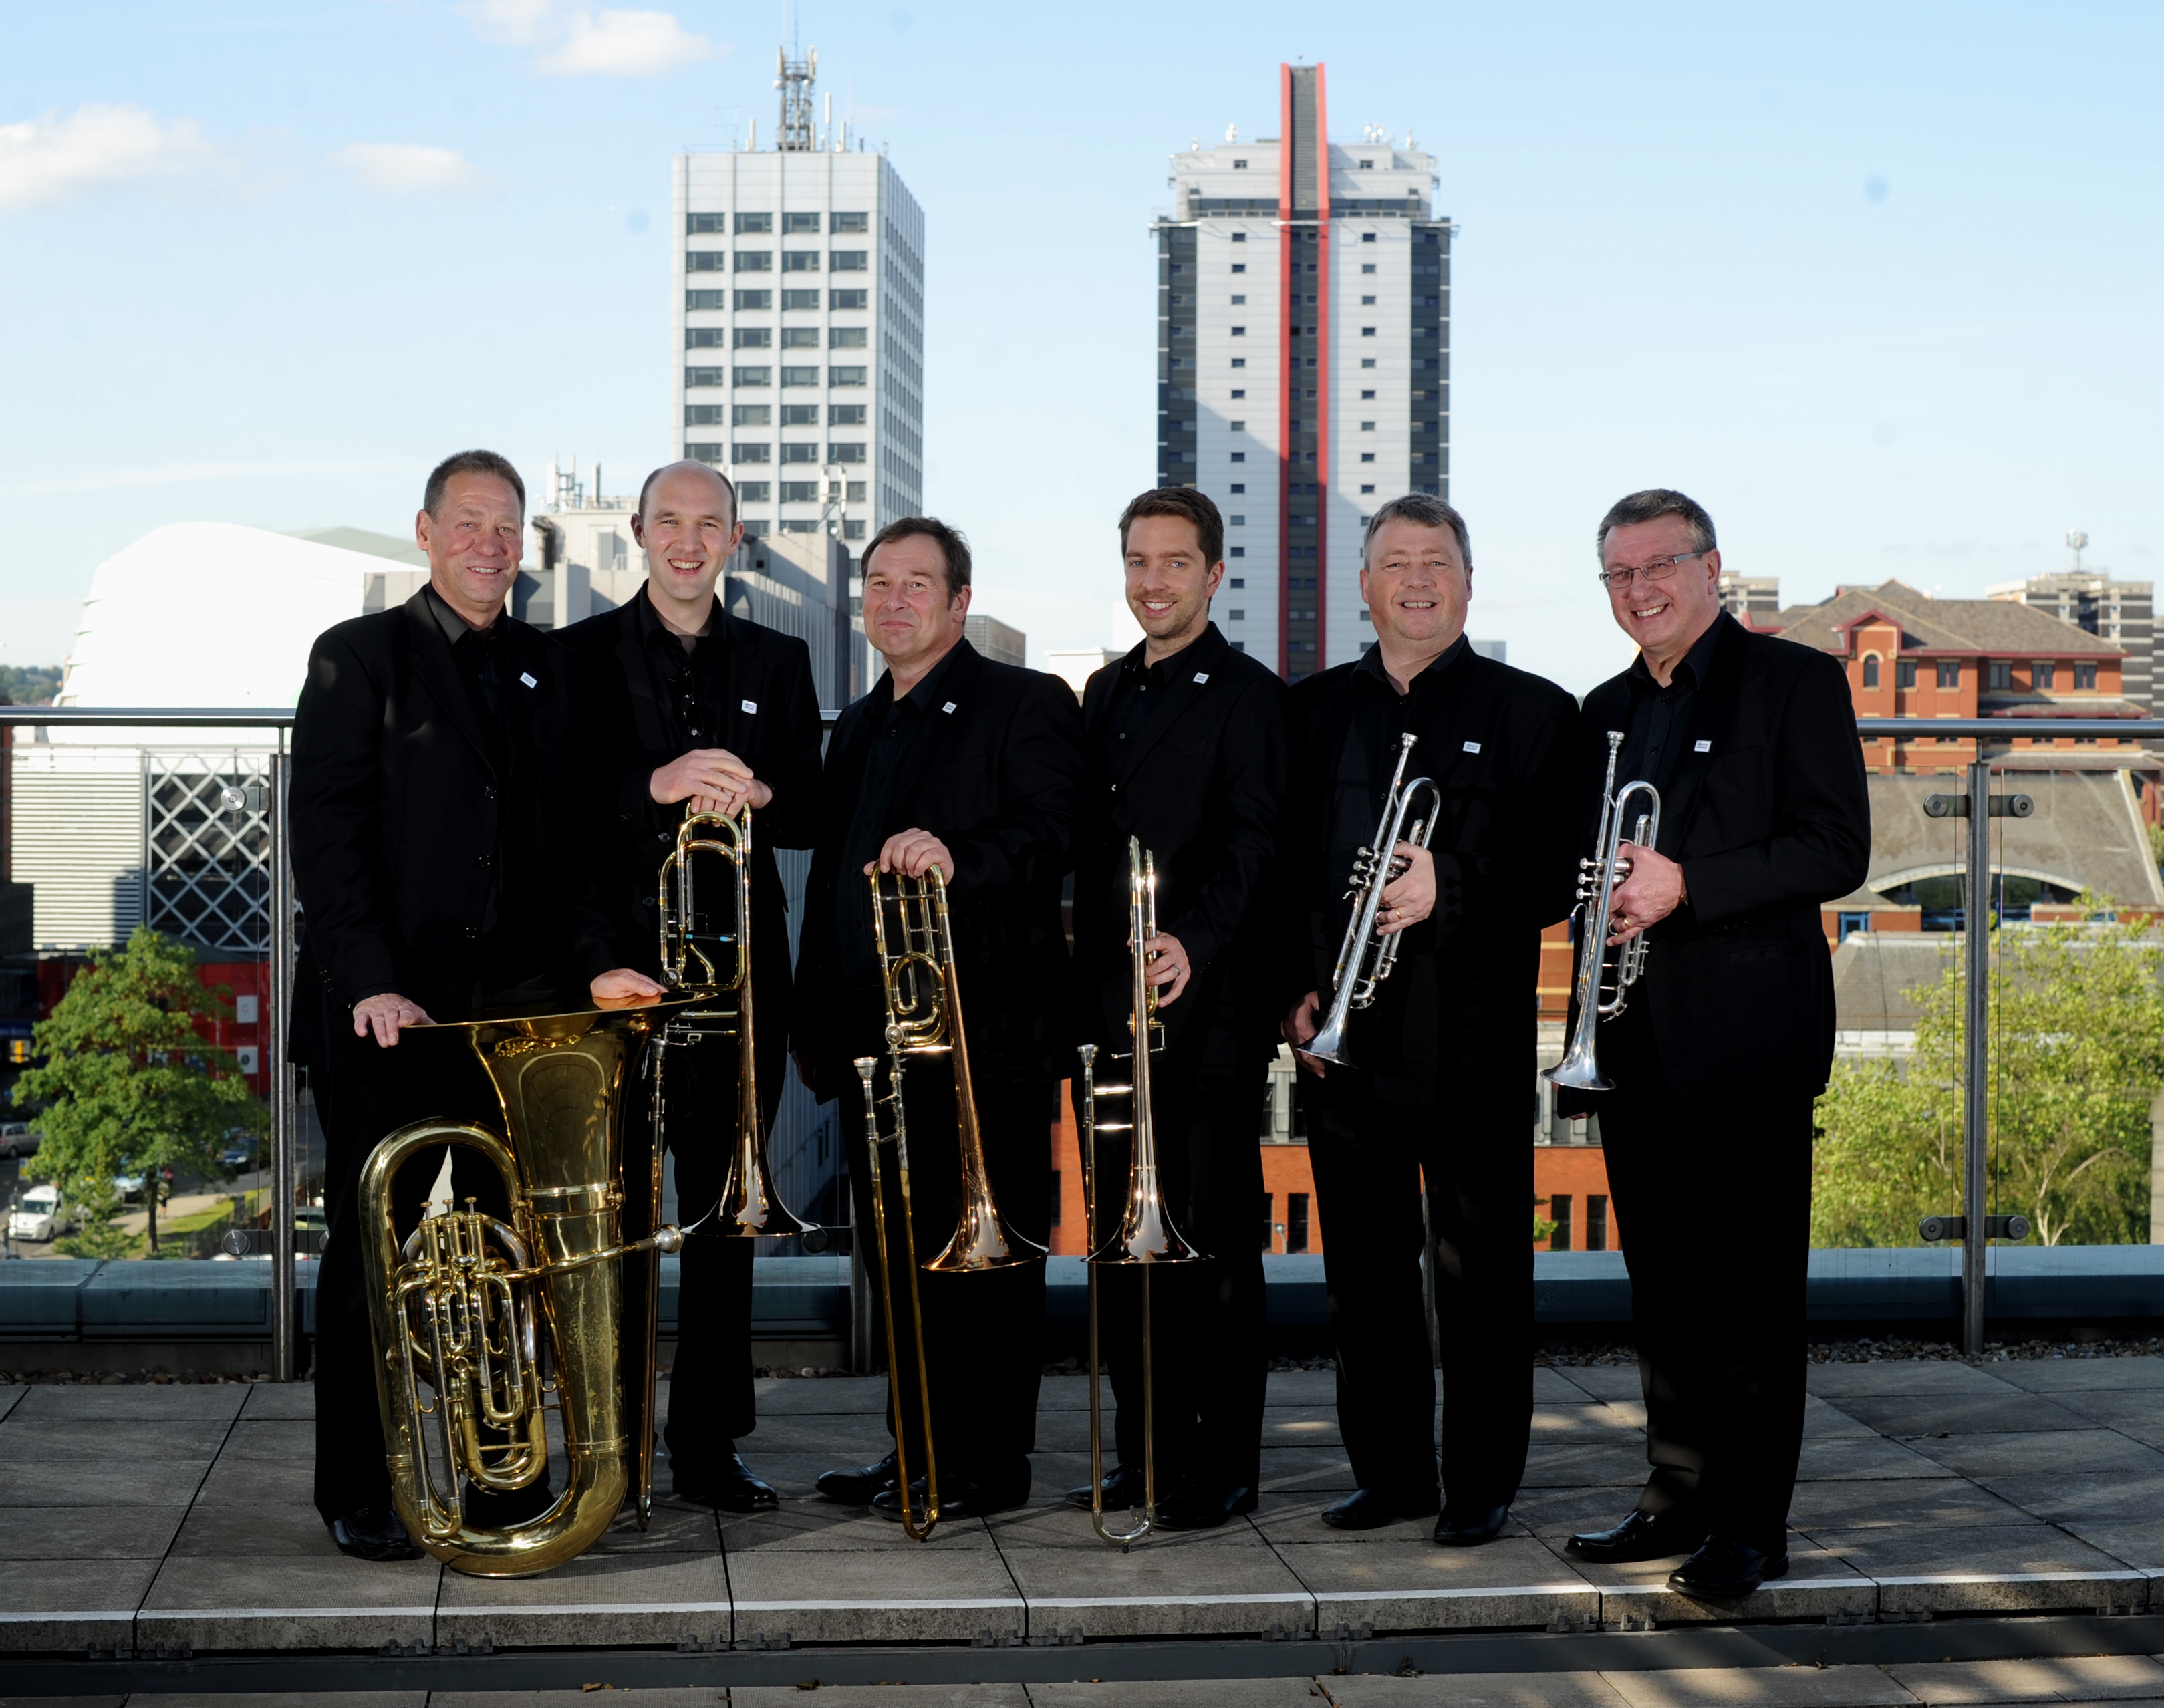 Dewsbury Lunchtime Concert - Opera North Brass Ensemble